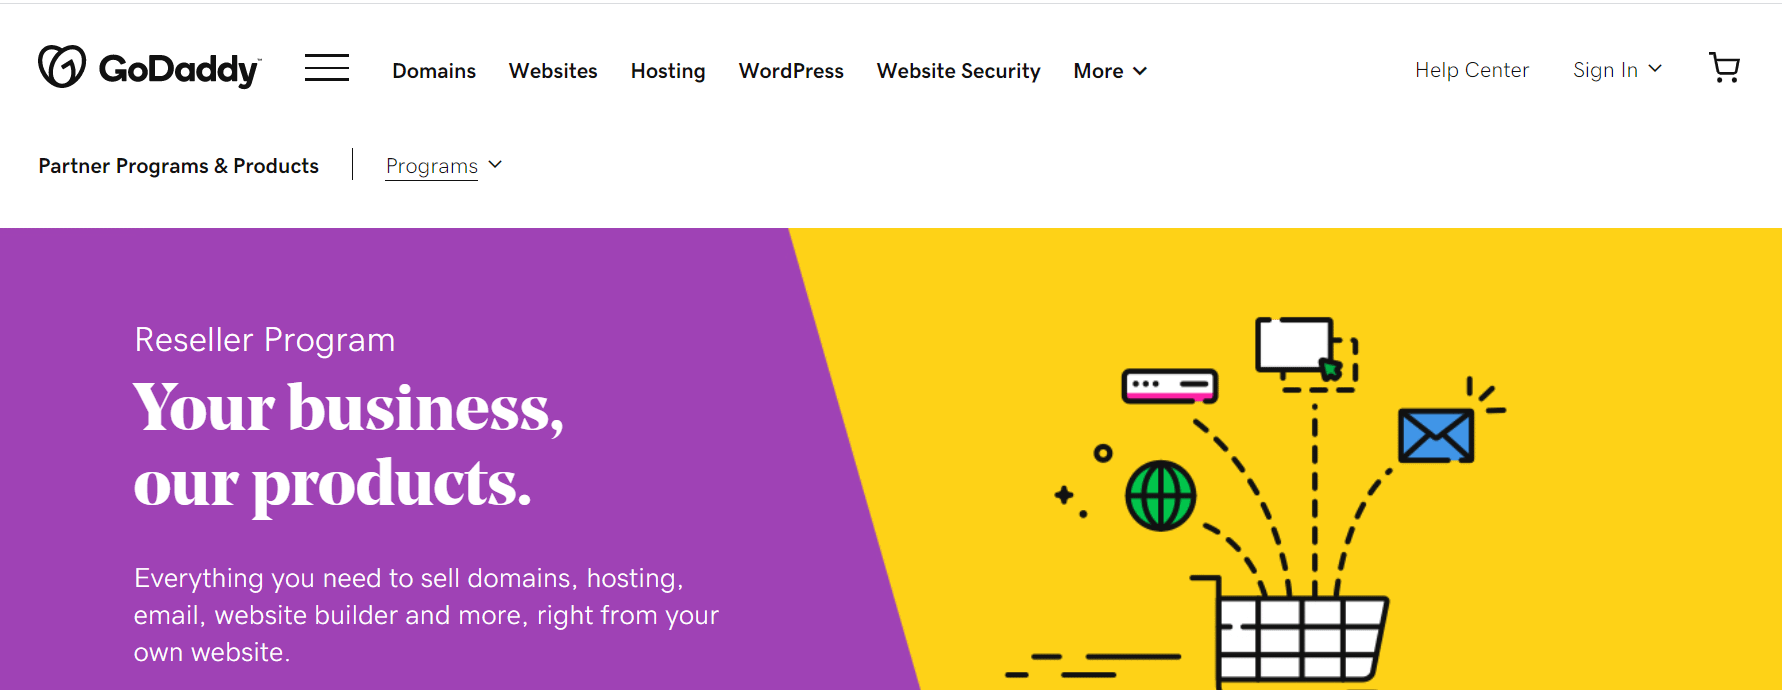 GoDaddy's hosting reseller page.